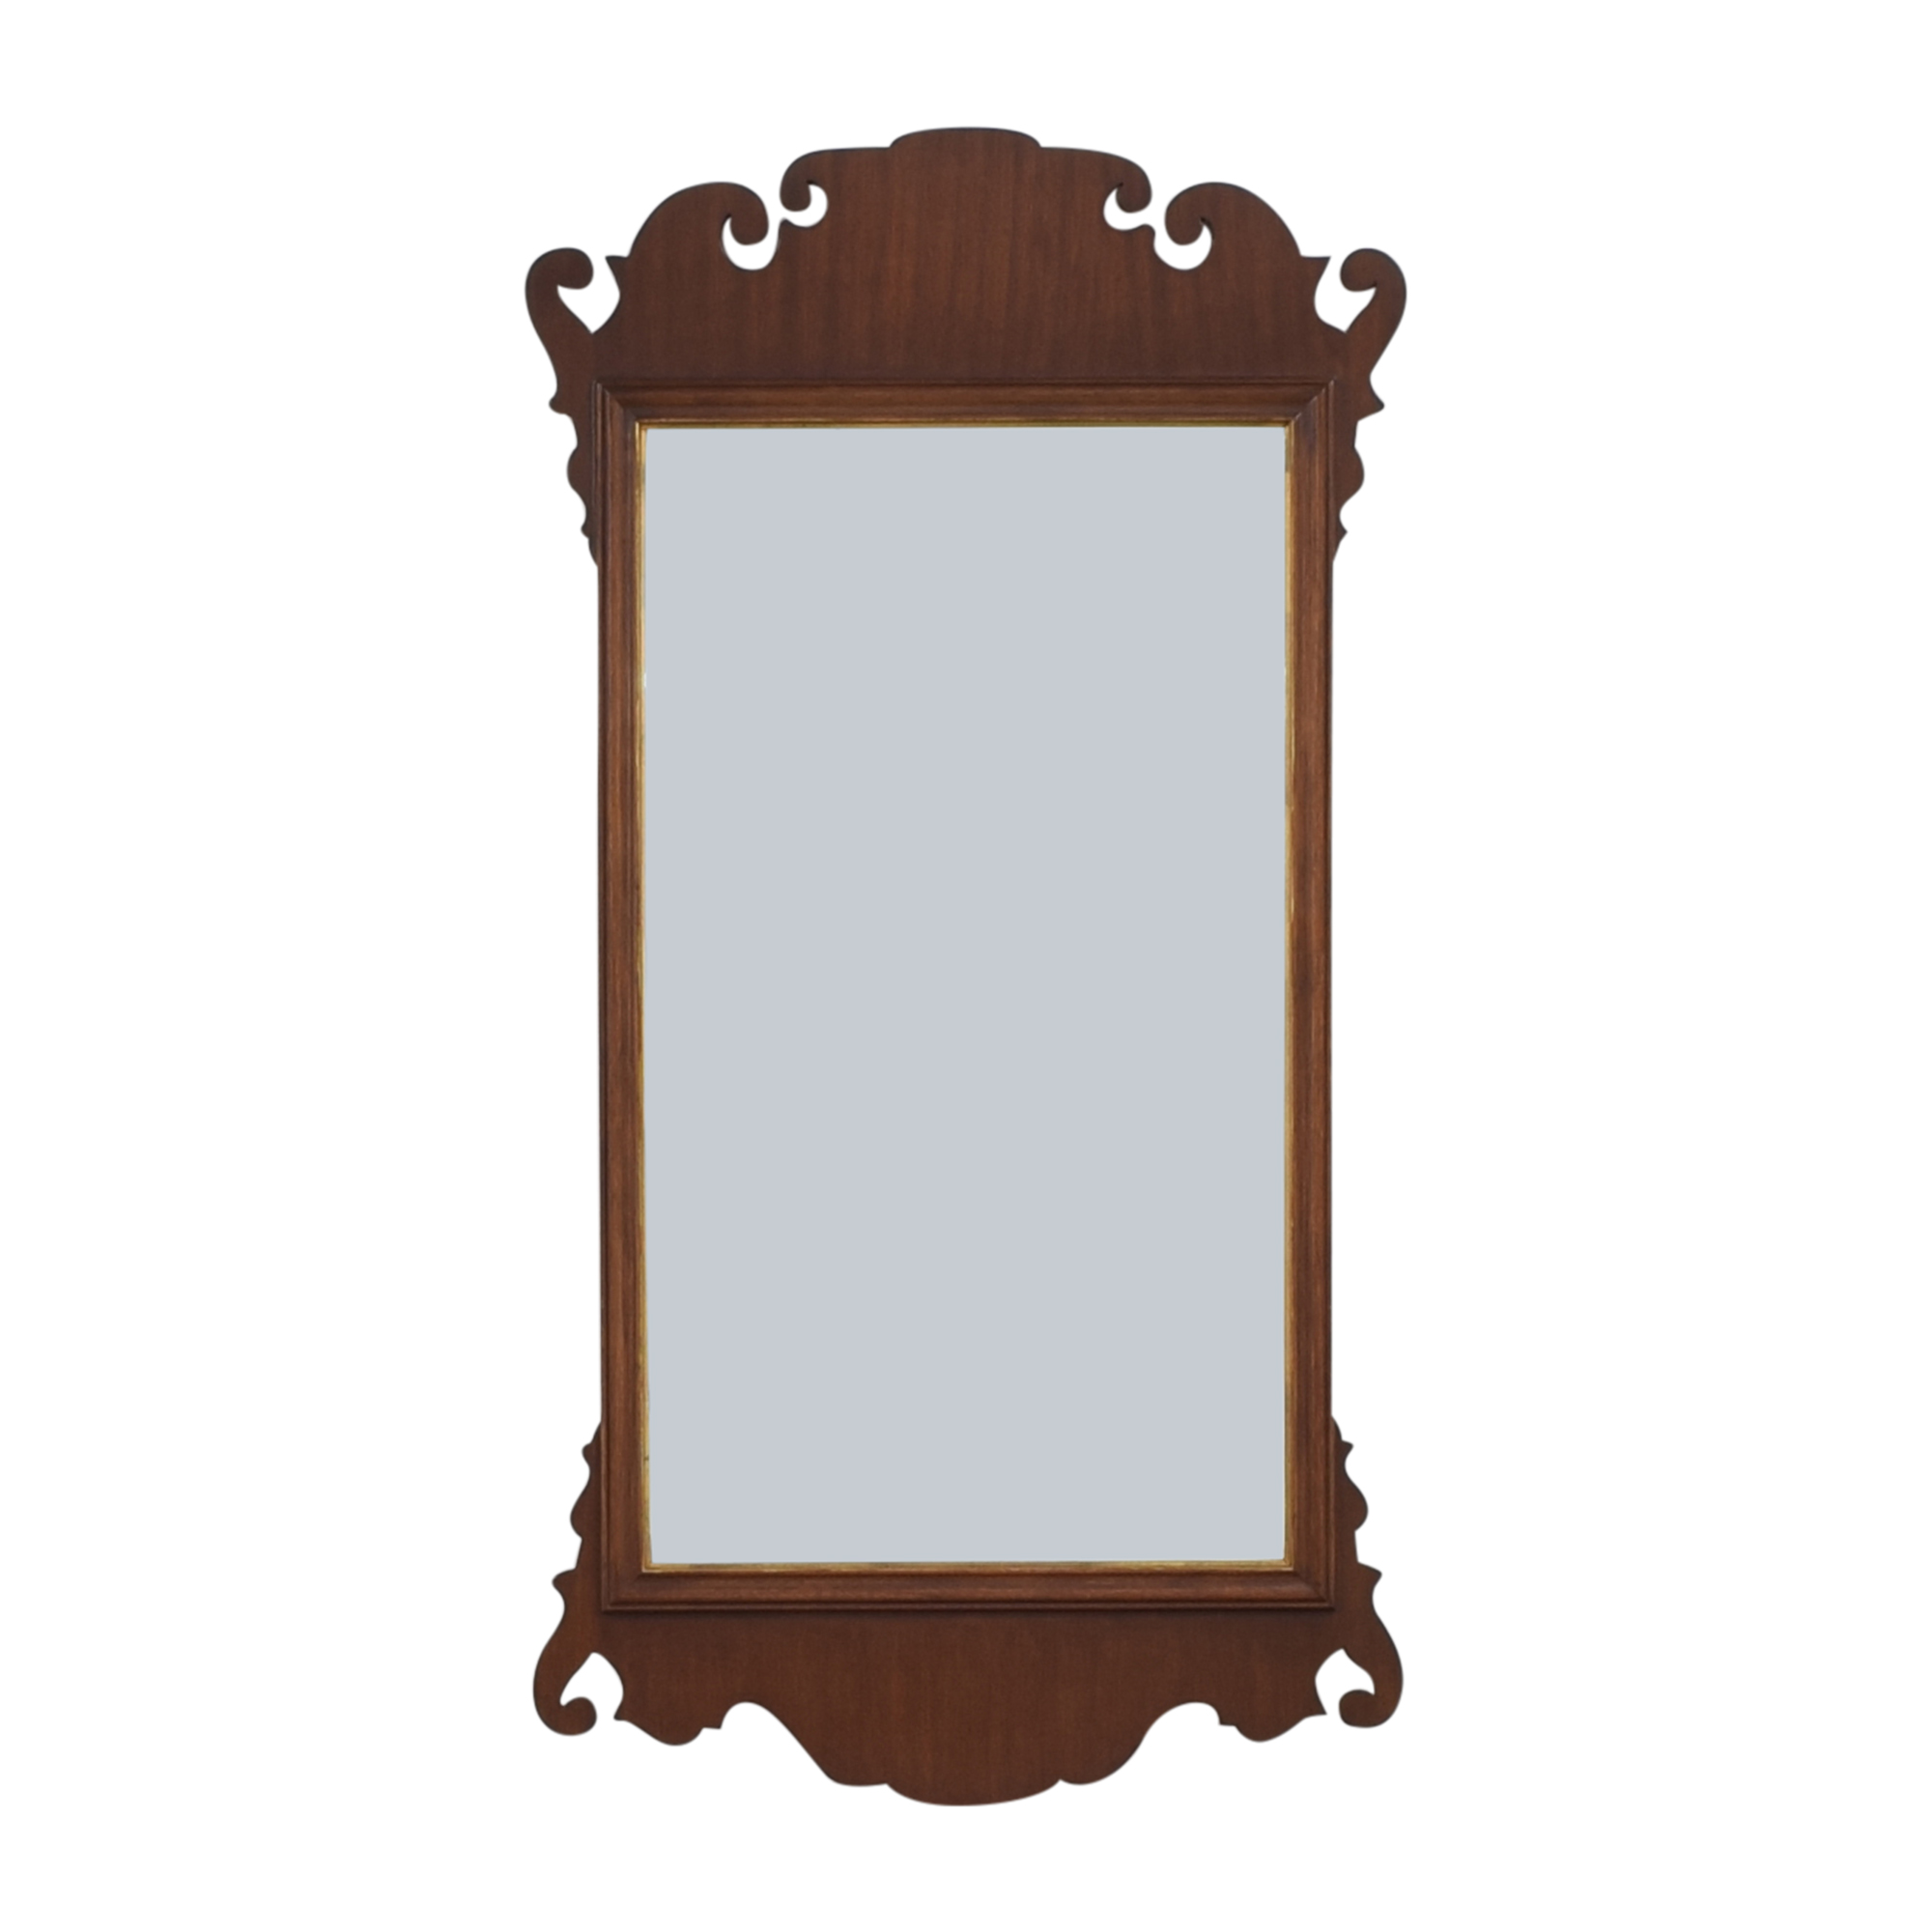 buy Friedman Brothers Williamsburg Chippendale Wall Mirror Friedman Brothers Mirrors